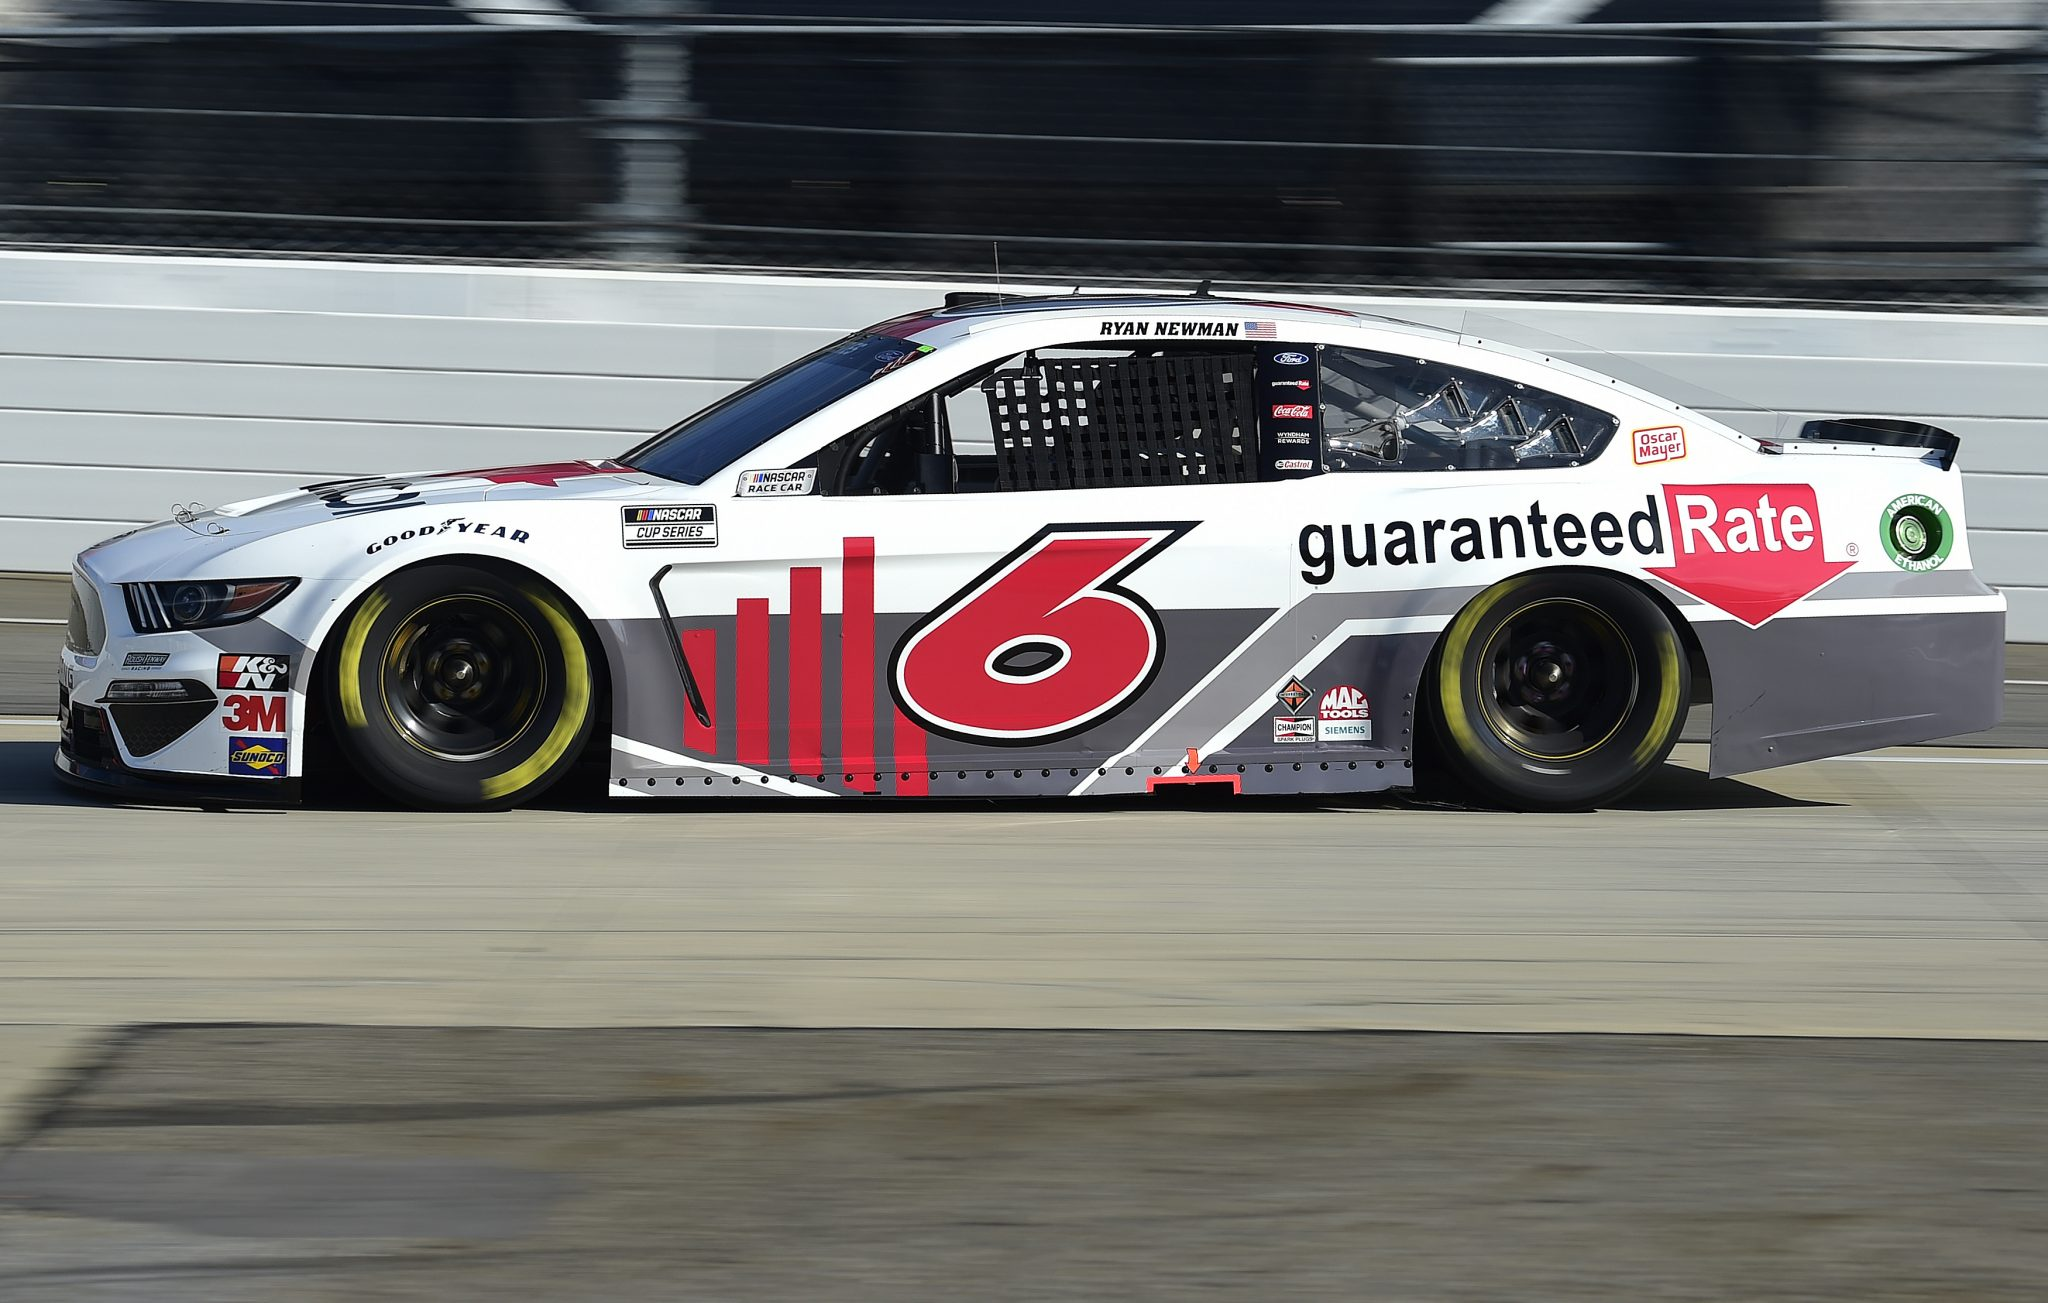 MARTINSVILLE, VIRGINIA - NOVEMBER 01: Ryan Newman, driver of the #6 Guaranteed Rate Ford, drives during the NASCAR Cup Series Xfinity 500 at Martinsville Speedway on November 01, 2020 in Martinsville, Virginia. (Photo by Jared C. Tilton/Getty Images) | Getty Images